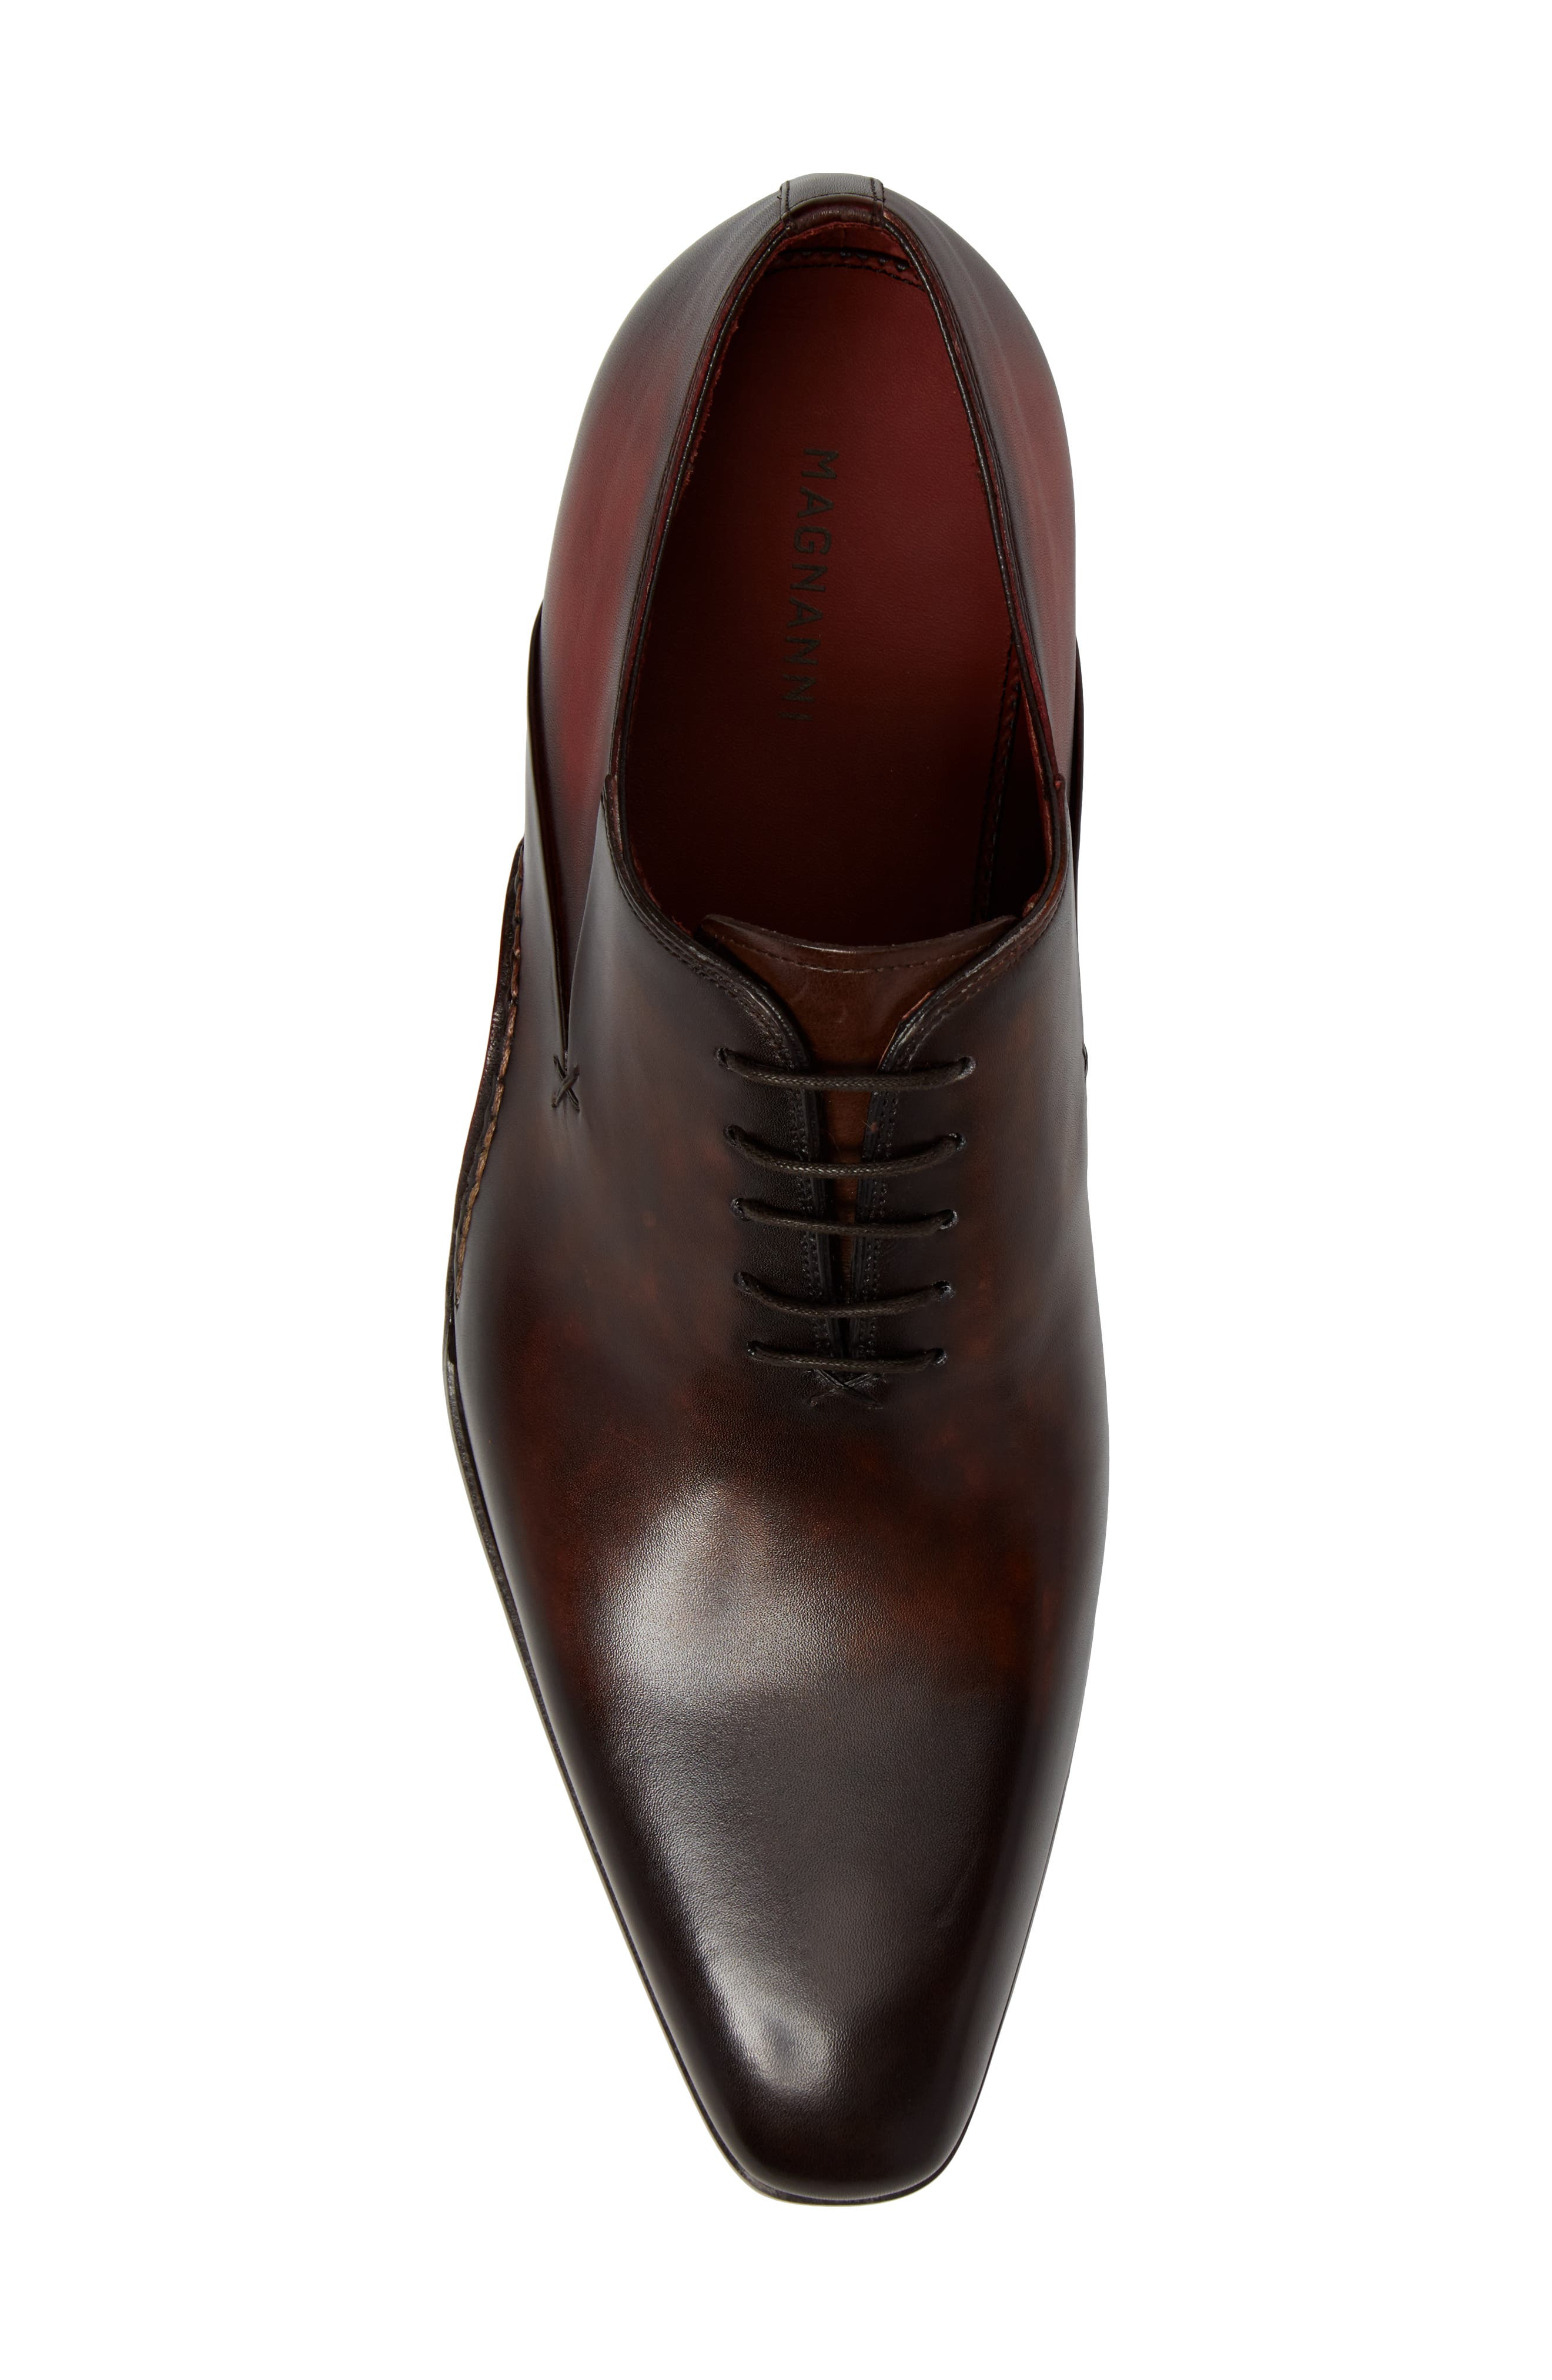 Cantabria Plain Toe Oxford,                             Alternate thumbnail 5, color,                             BROWN/ RED LEATHER